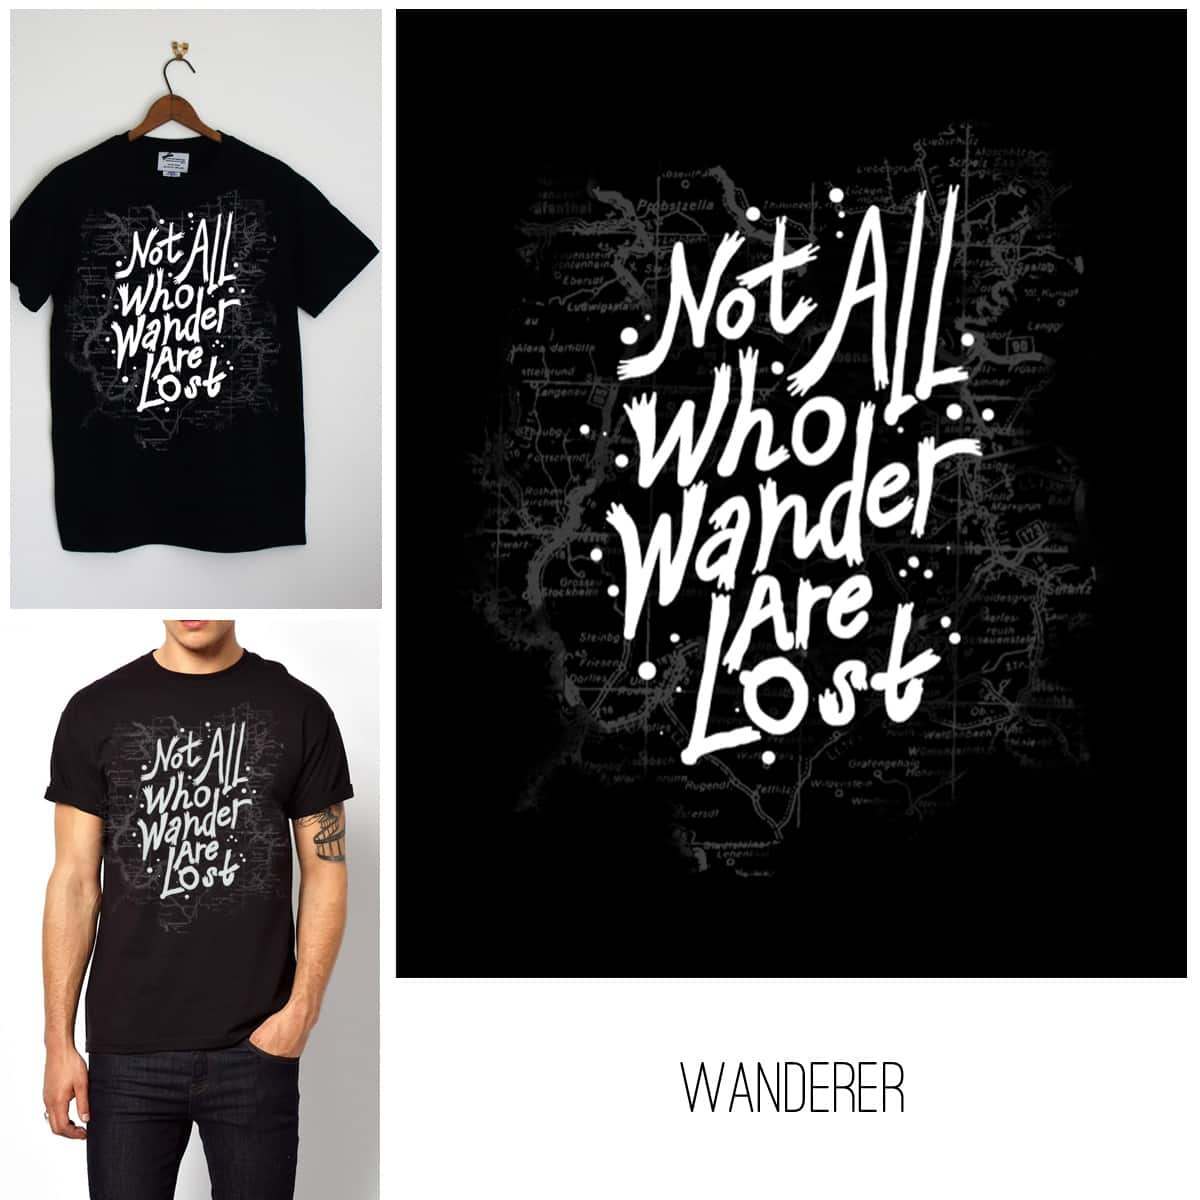 Wanderer by radiomode on Threadless